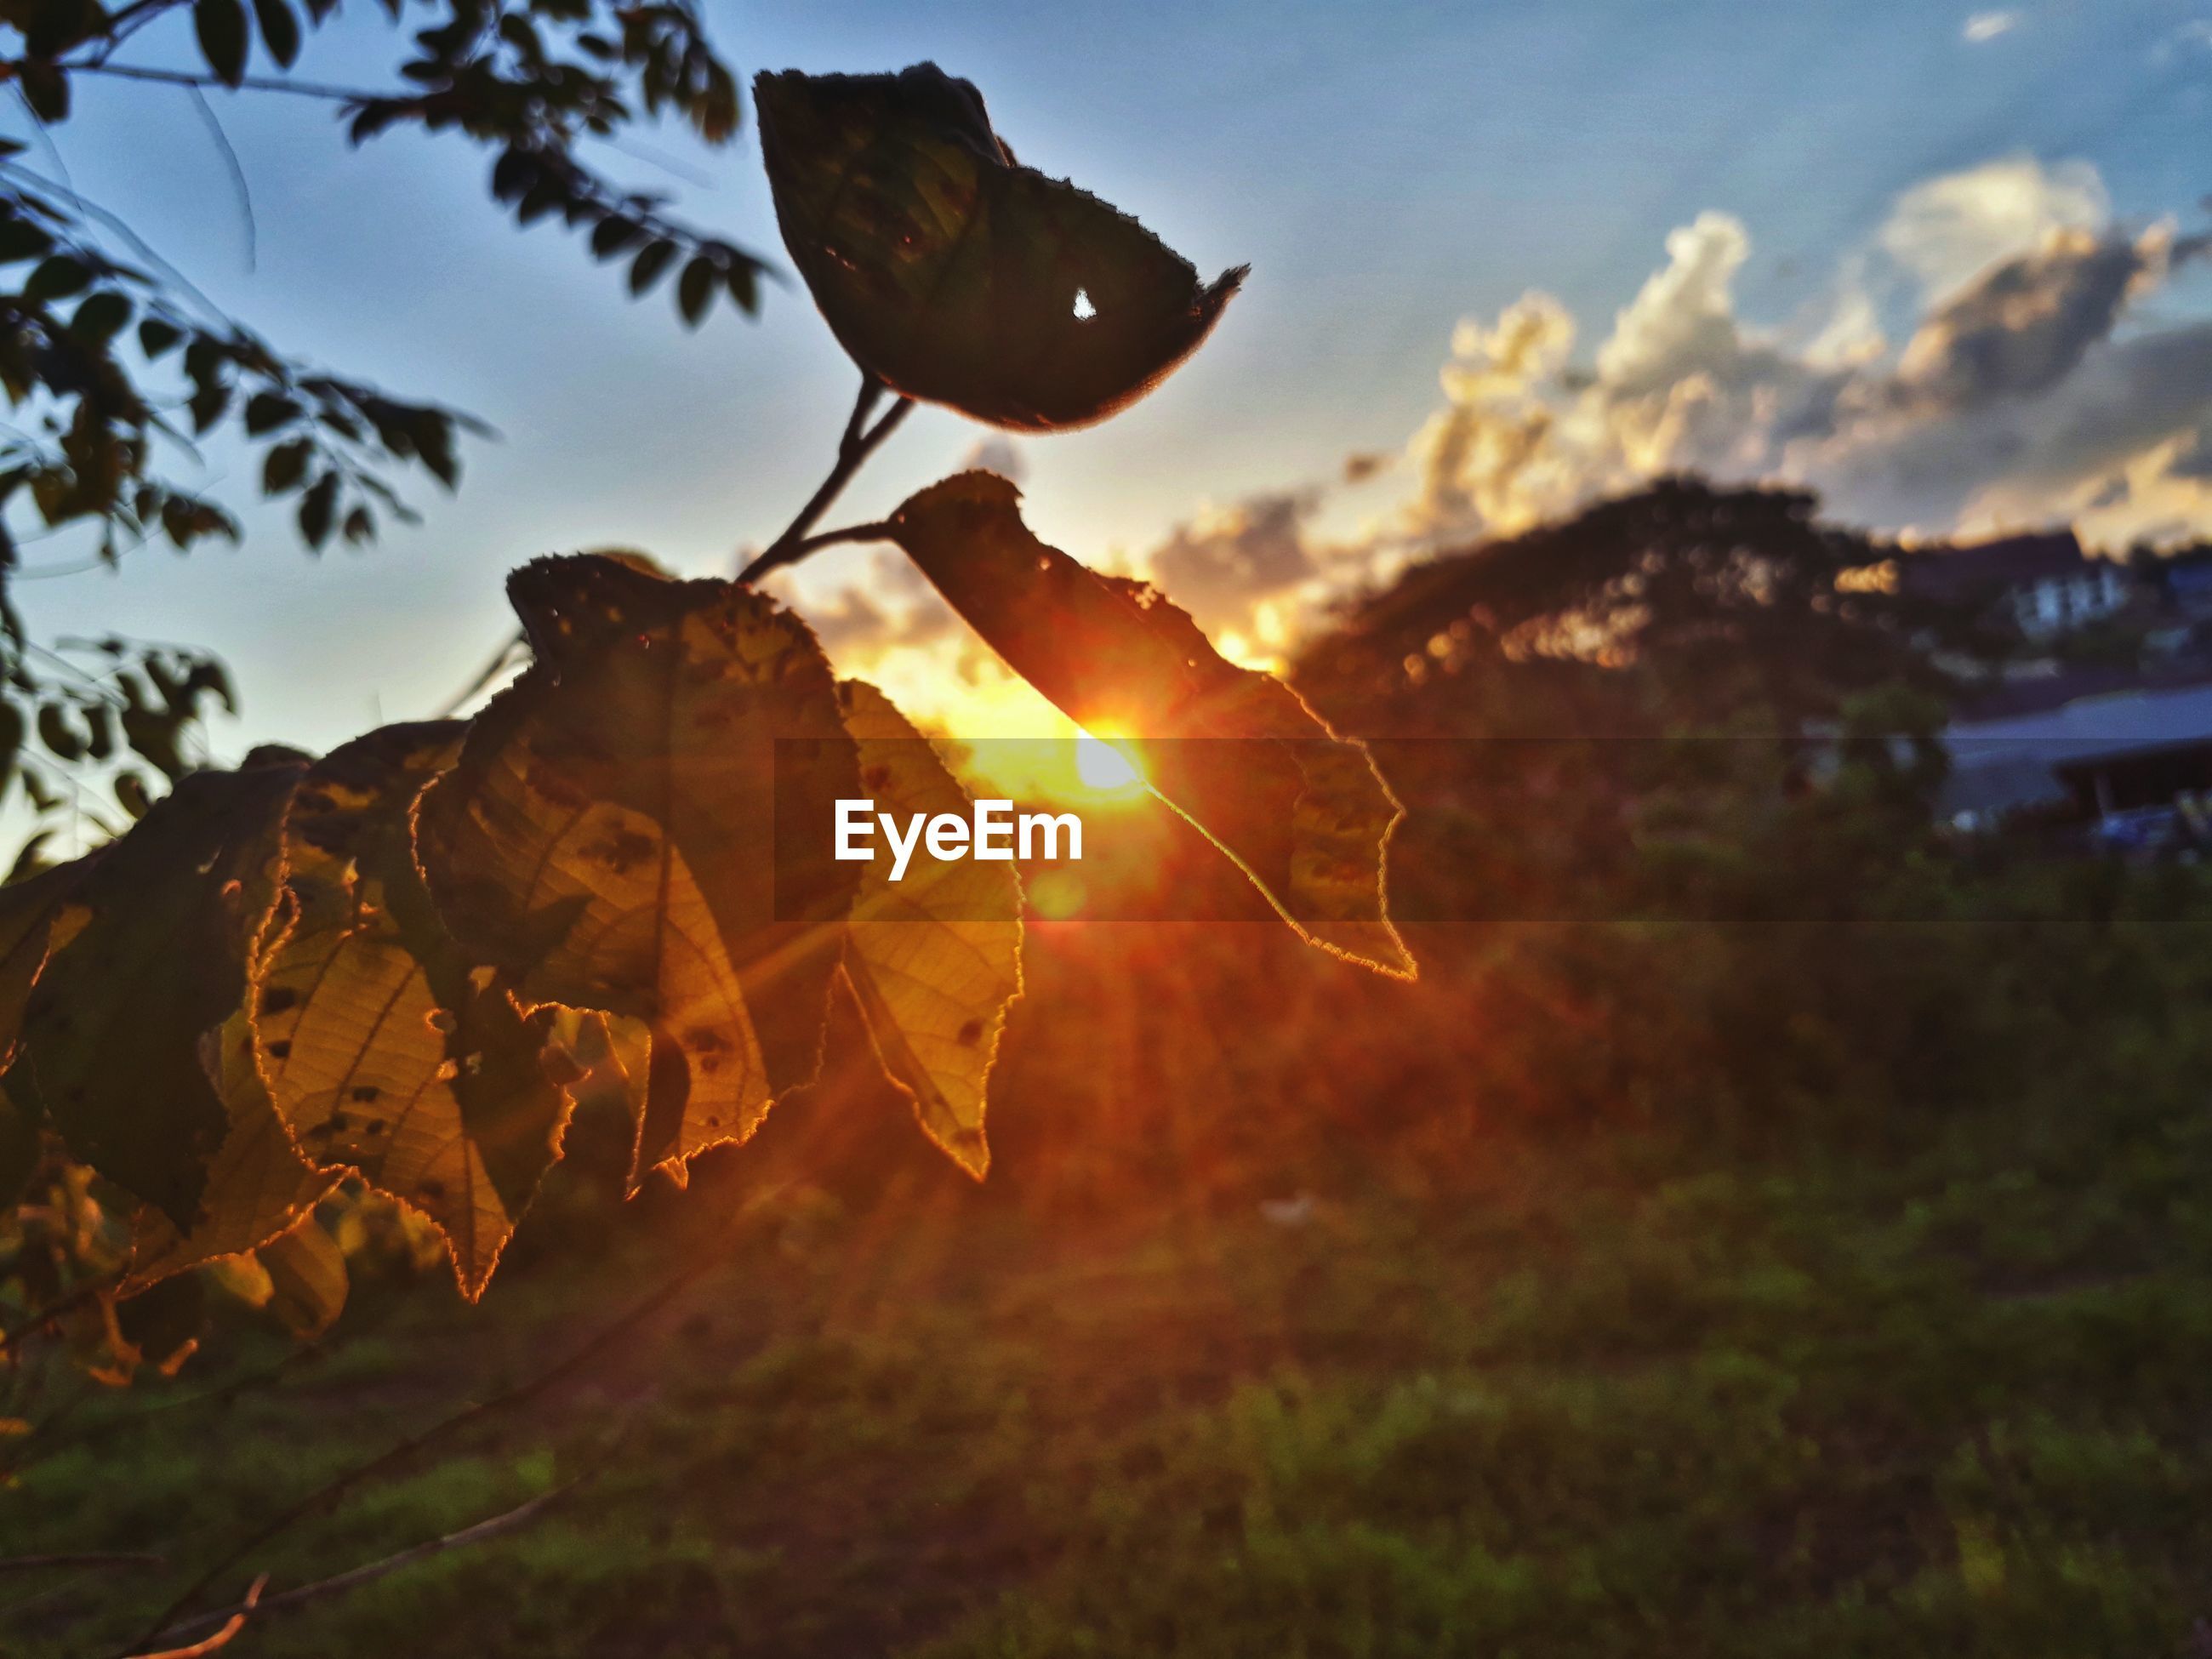 CLOSE-UP OF AUTUMNAL LEAVES AGAINST SUNSET SKY